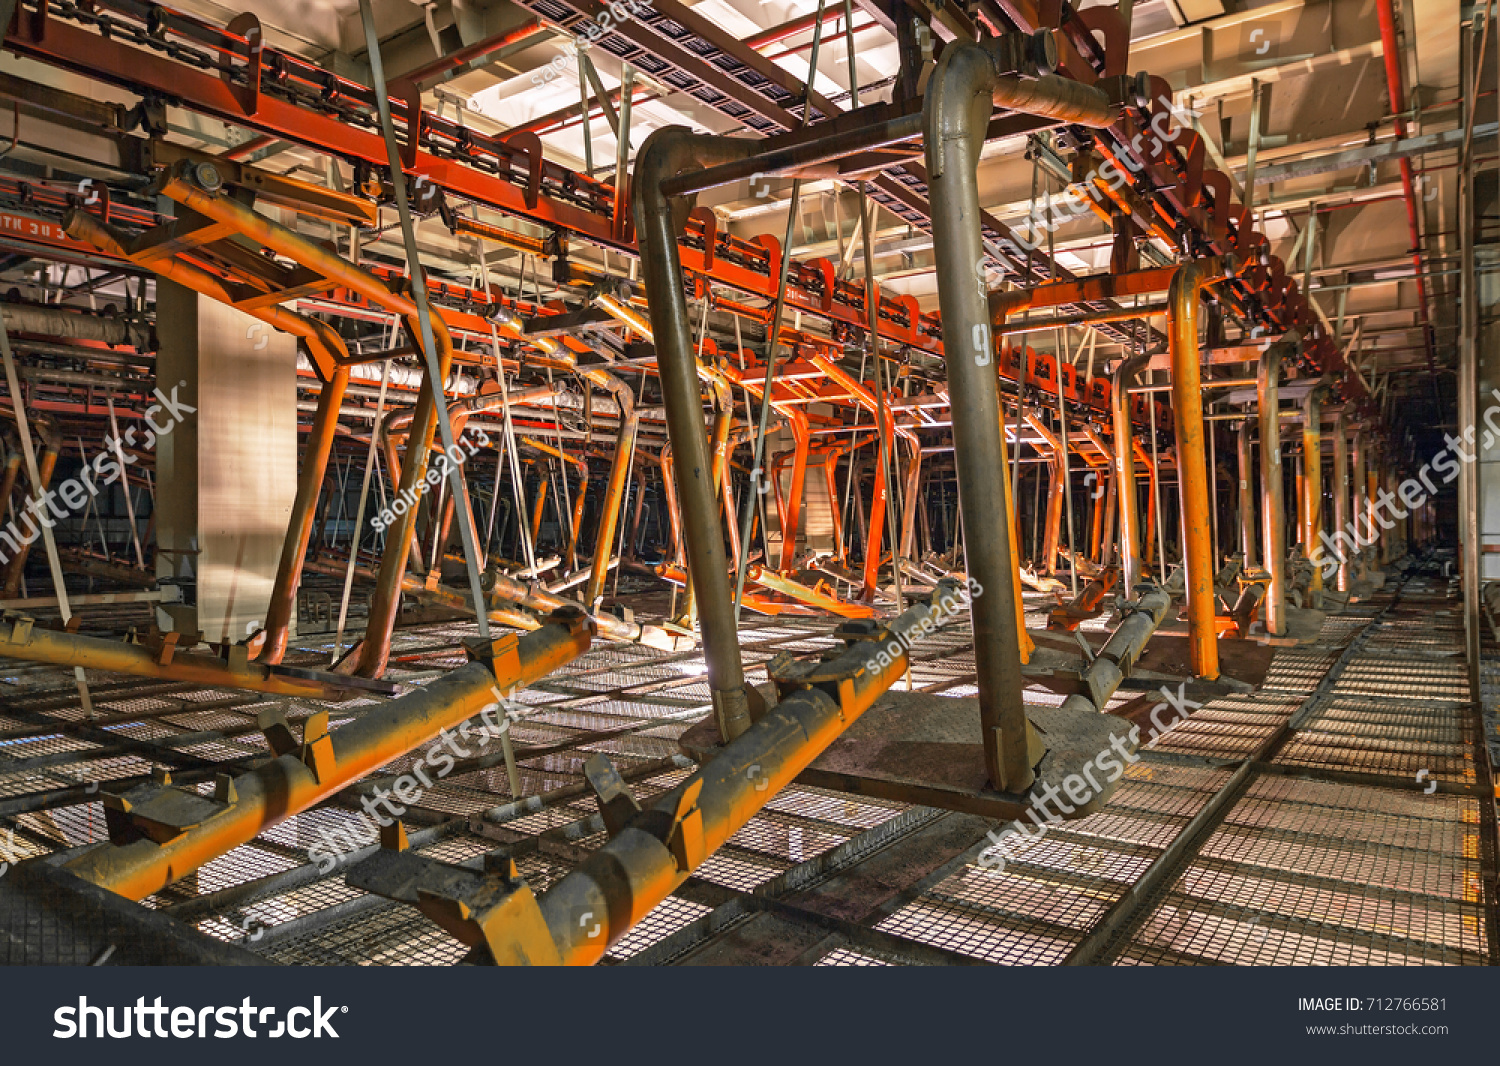 Stopped Old Giant Conveyor Abandoned Car Stock Photo (Royalty Free ... for Abandoned Car Factory  111ane